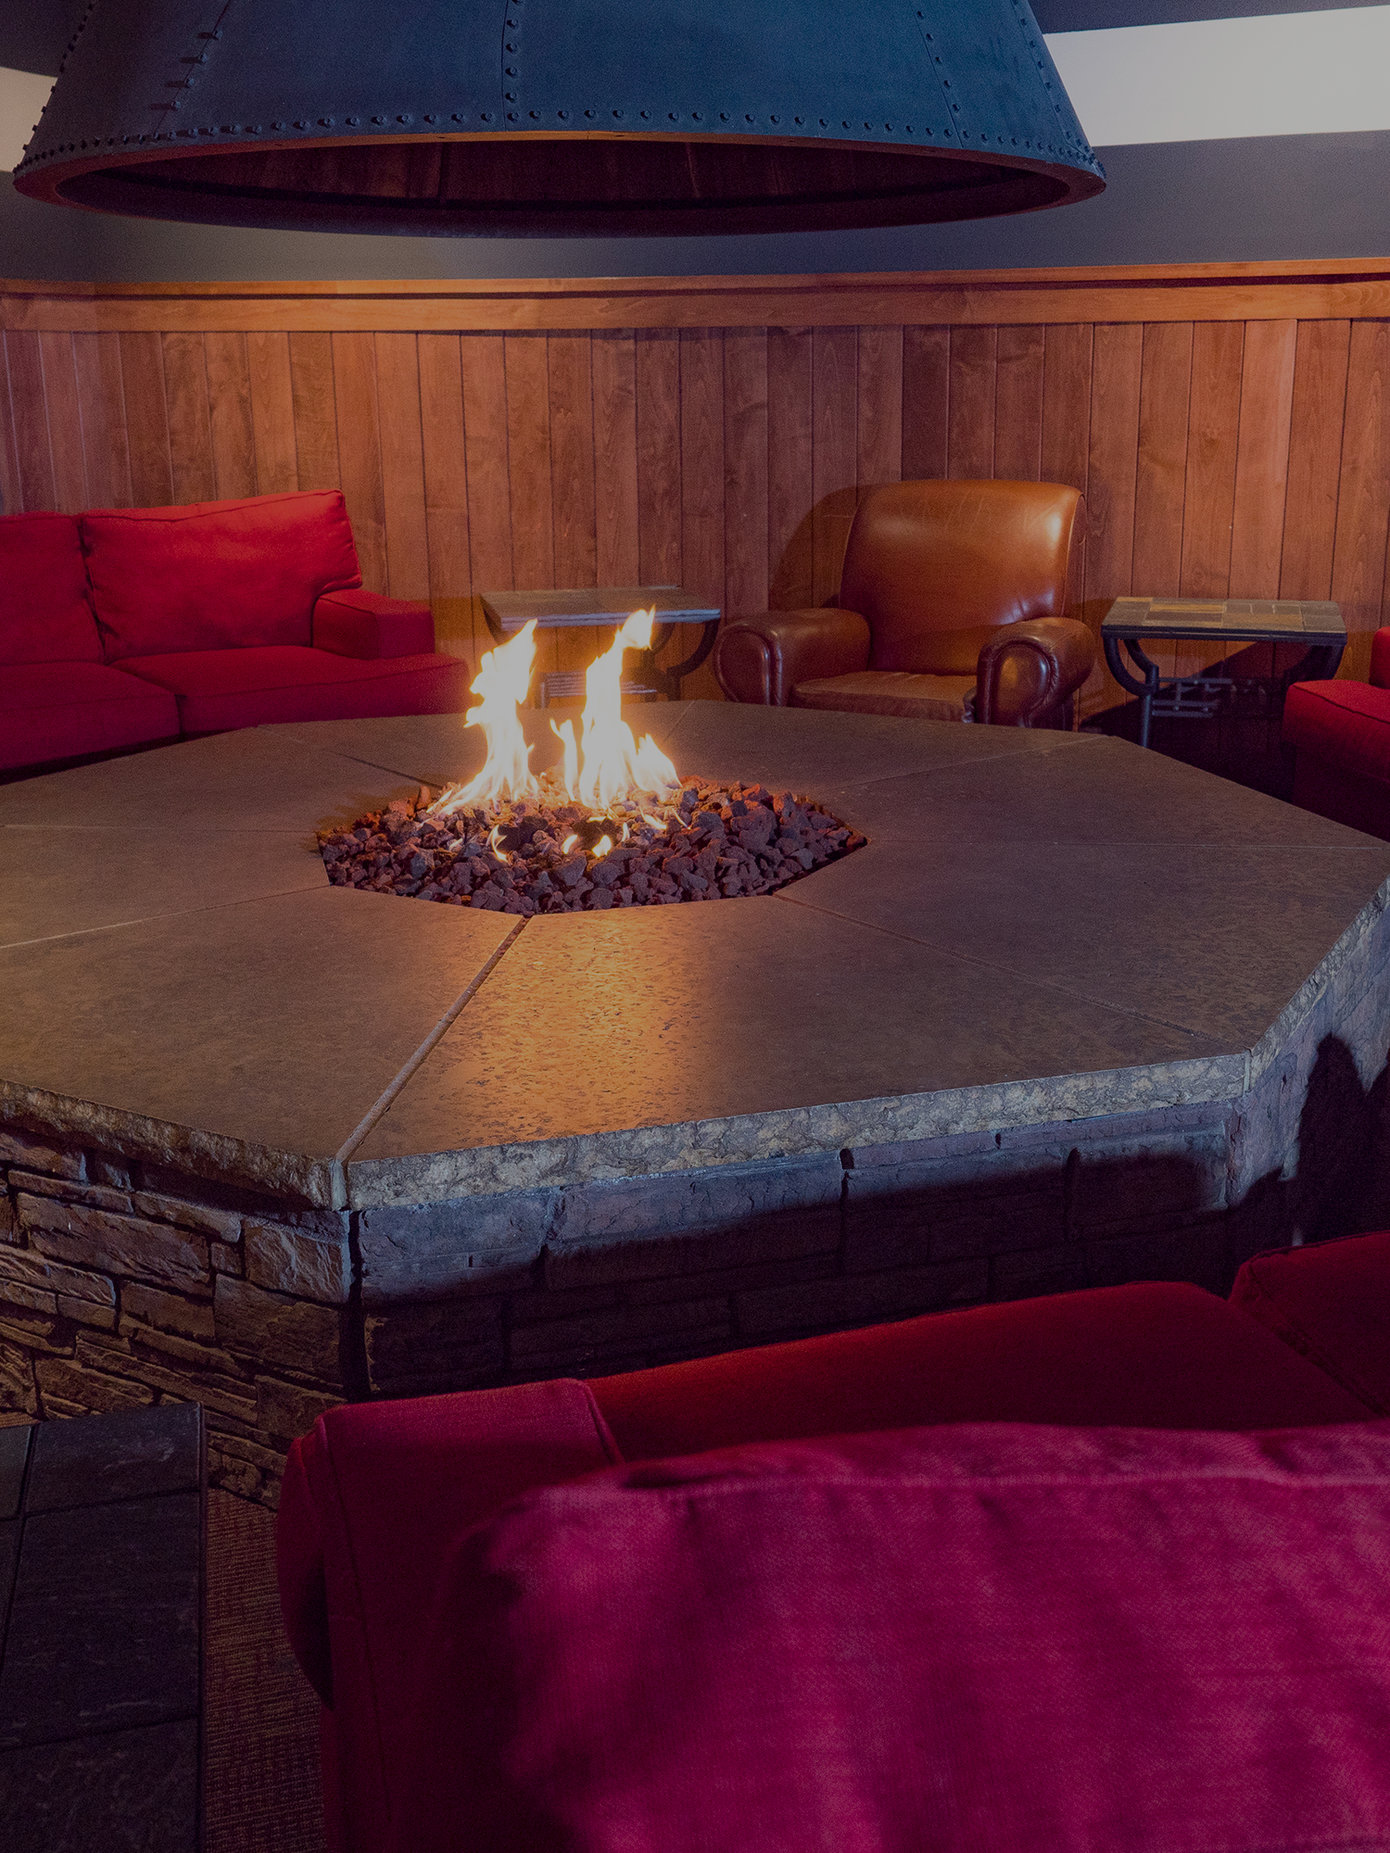 Comfy maroon couches around a fire pit with flames